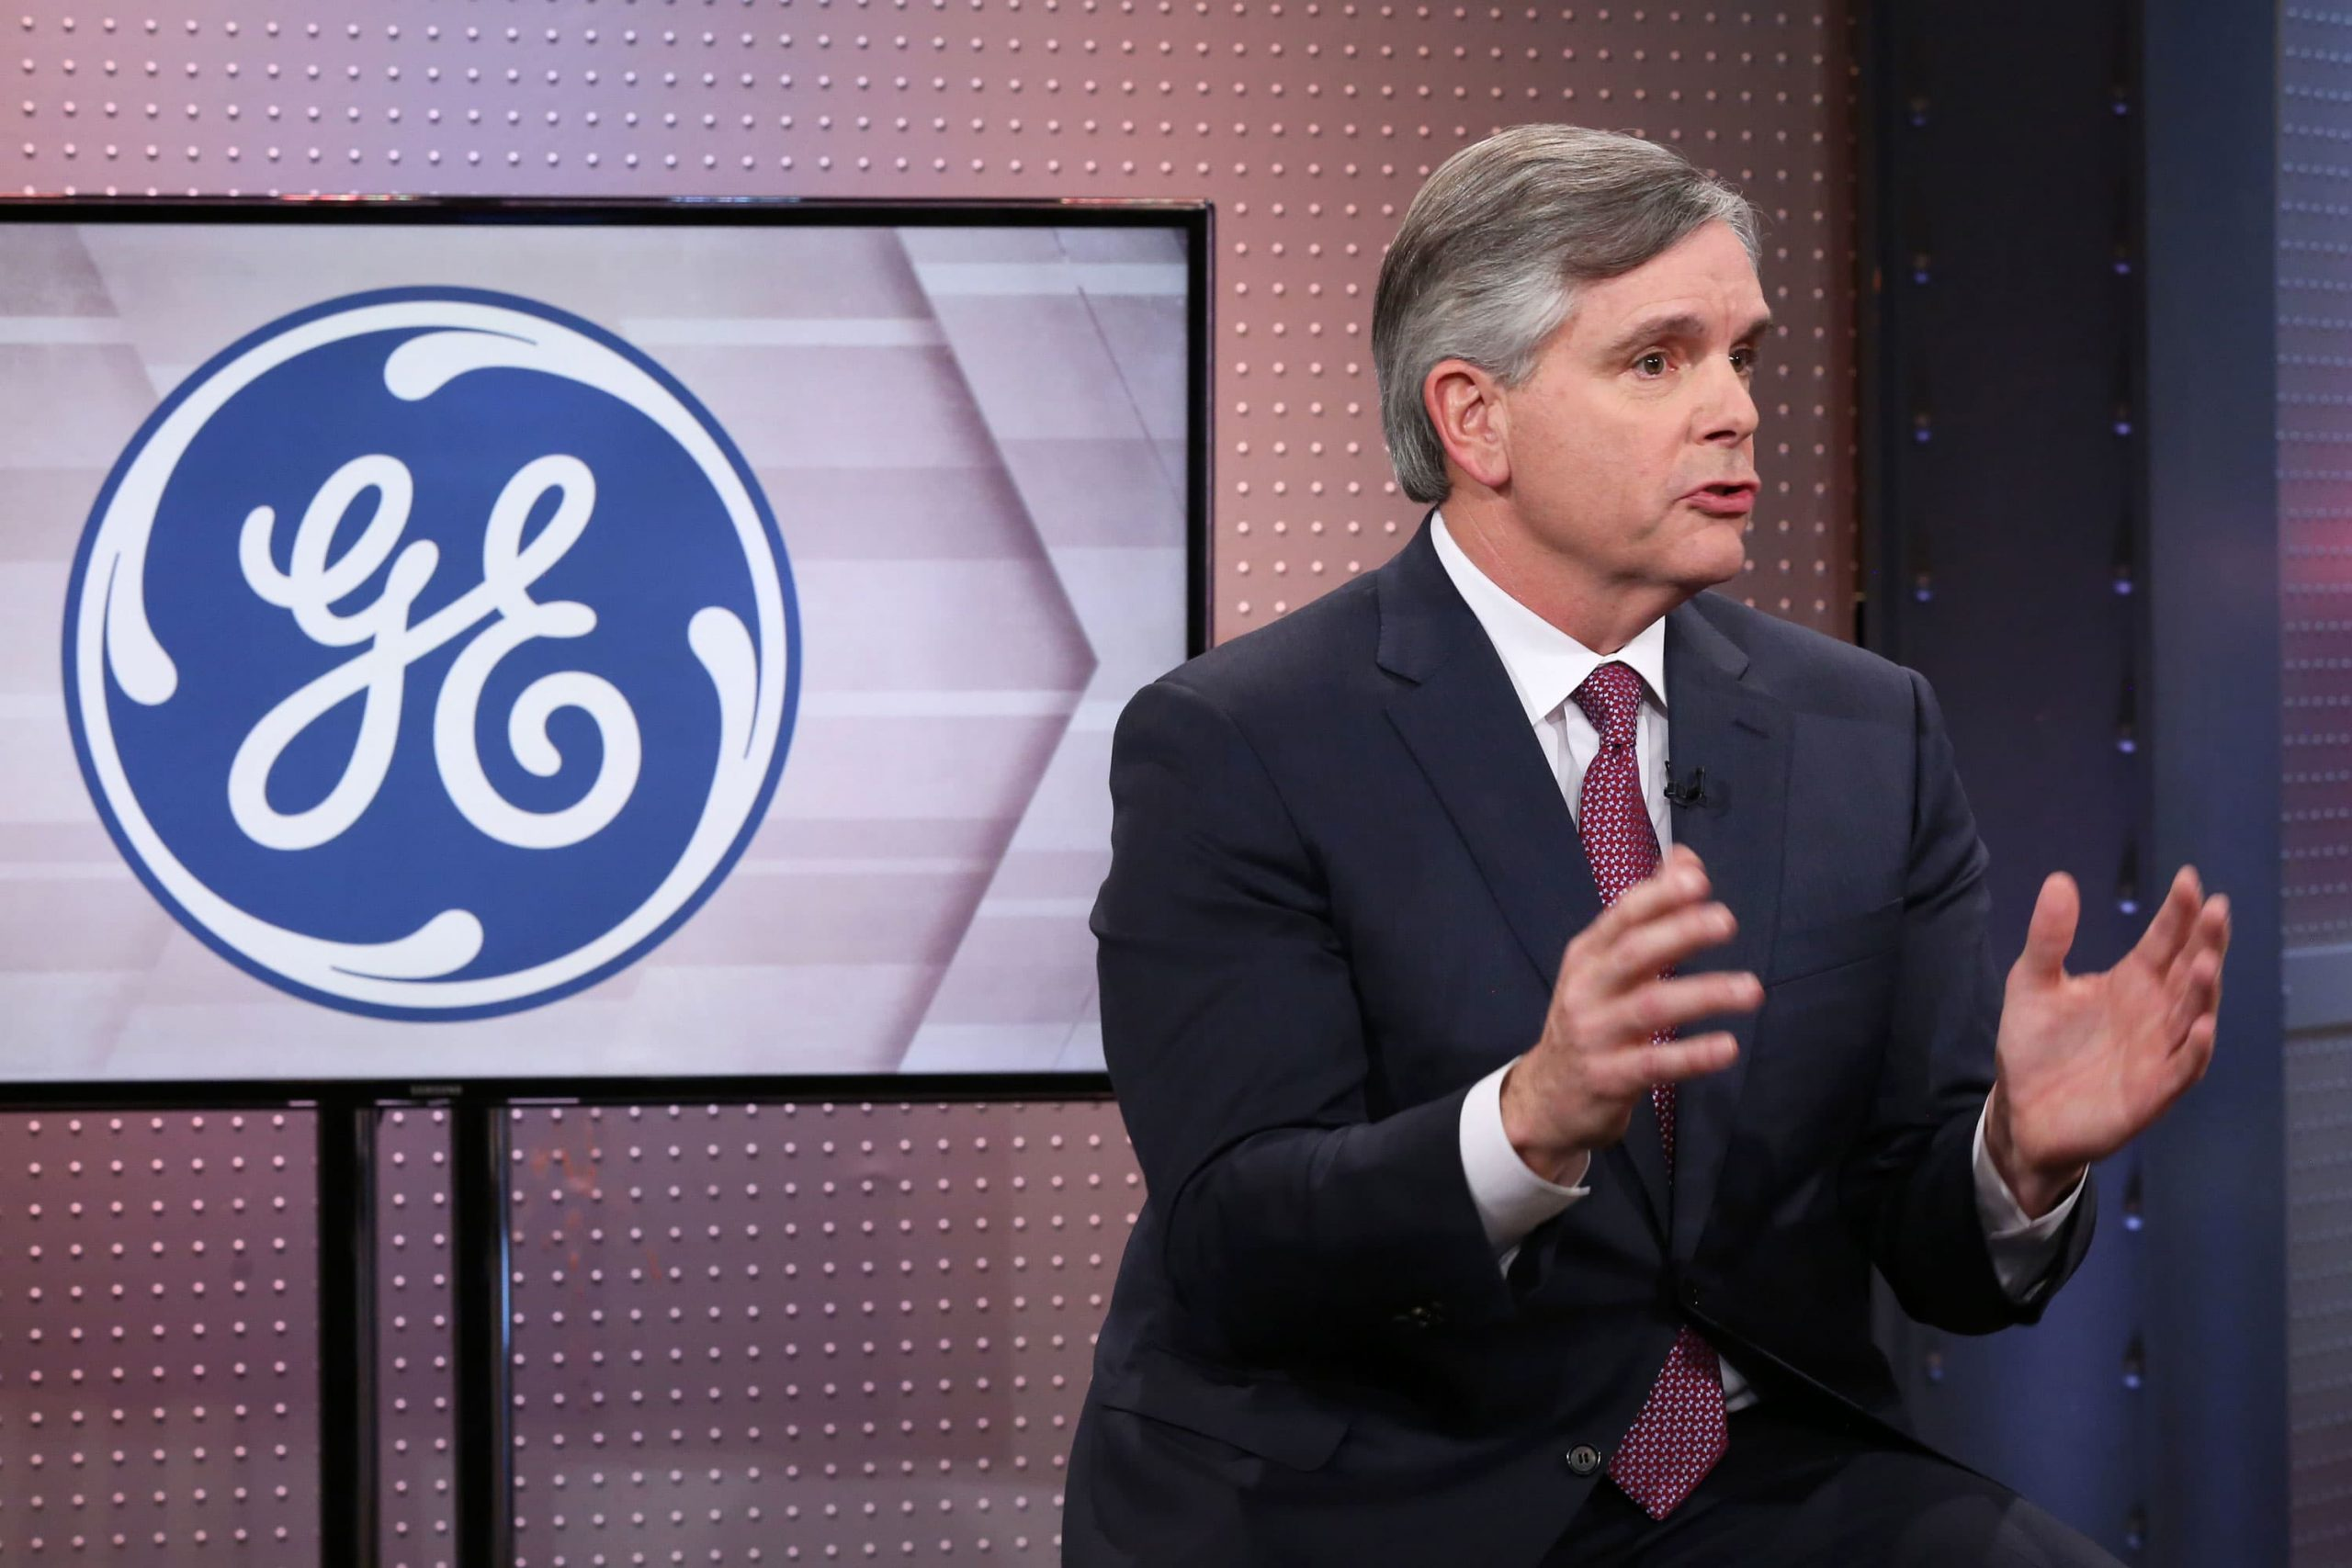 General Electric agrees to pay SEC $ 200 million SEC fine for misleading investors